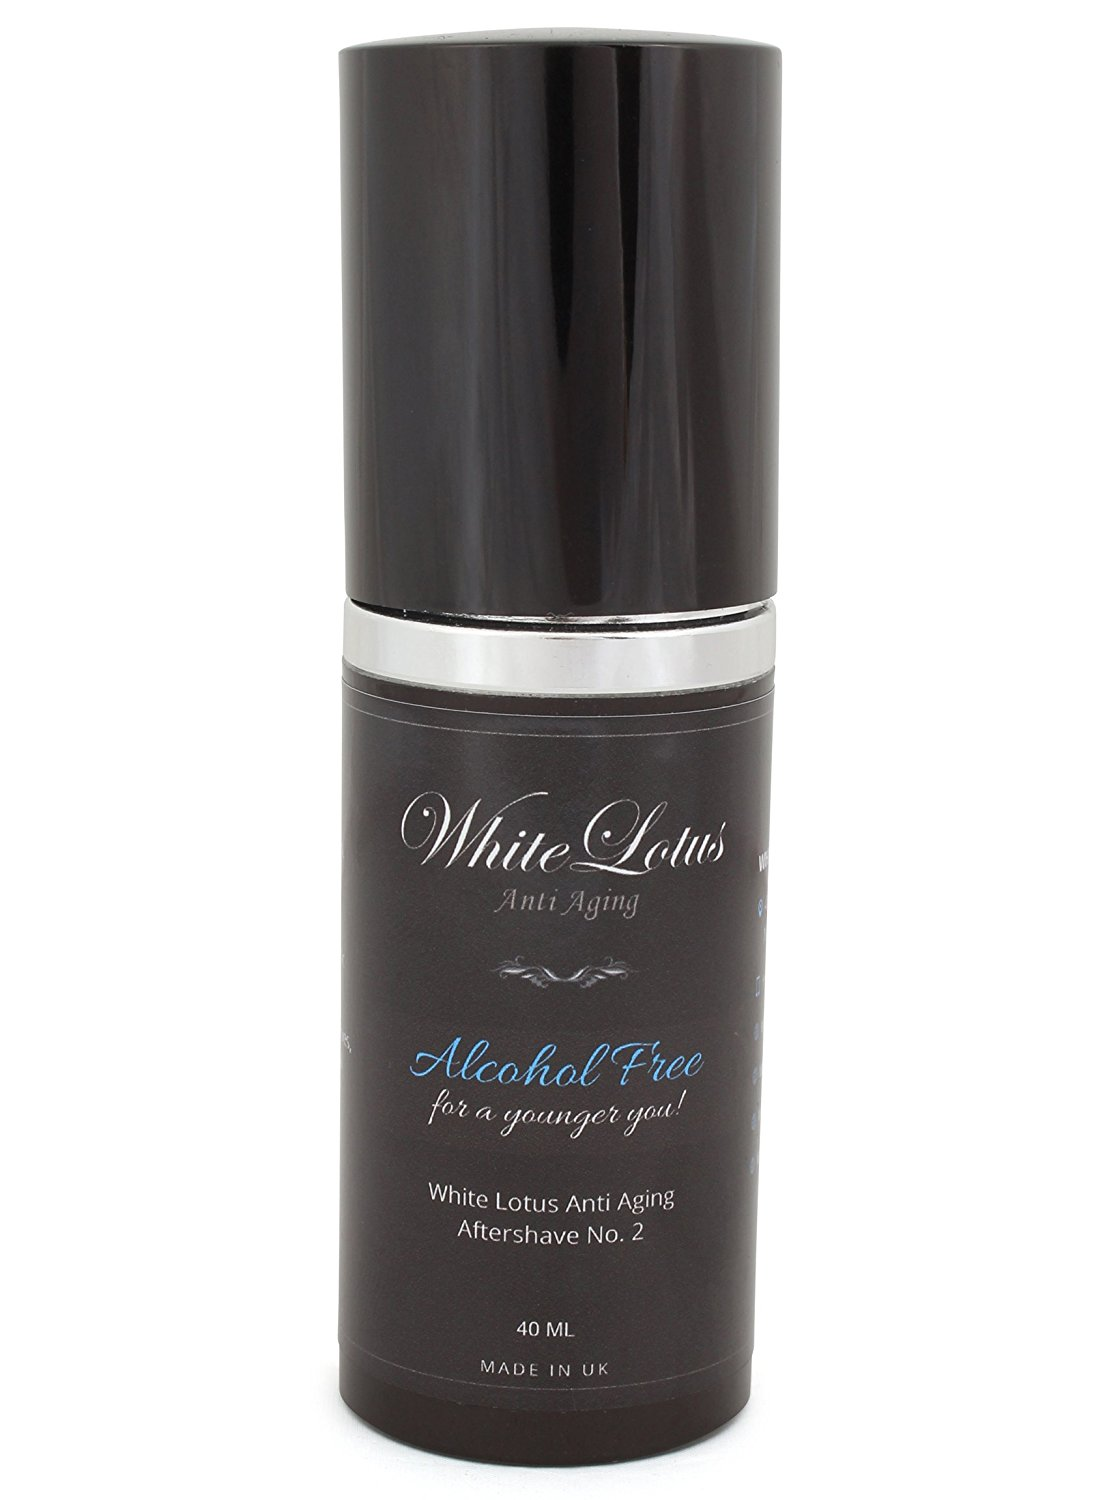 Alcohol Free Aftershave For Men- All Natural Aftershave Lotion No.2 by White Lotus Anti Aging. Natural Alcohol Free Cologne of Attar Oil- Less Dry Skin For Less Wrinkles, Redness & Soreness- 40mL